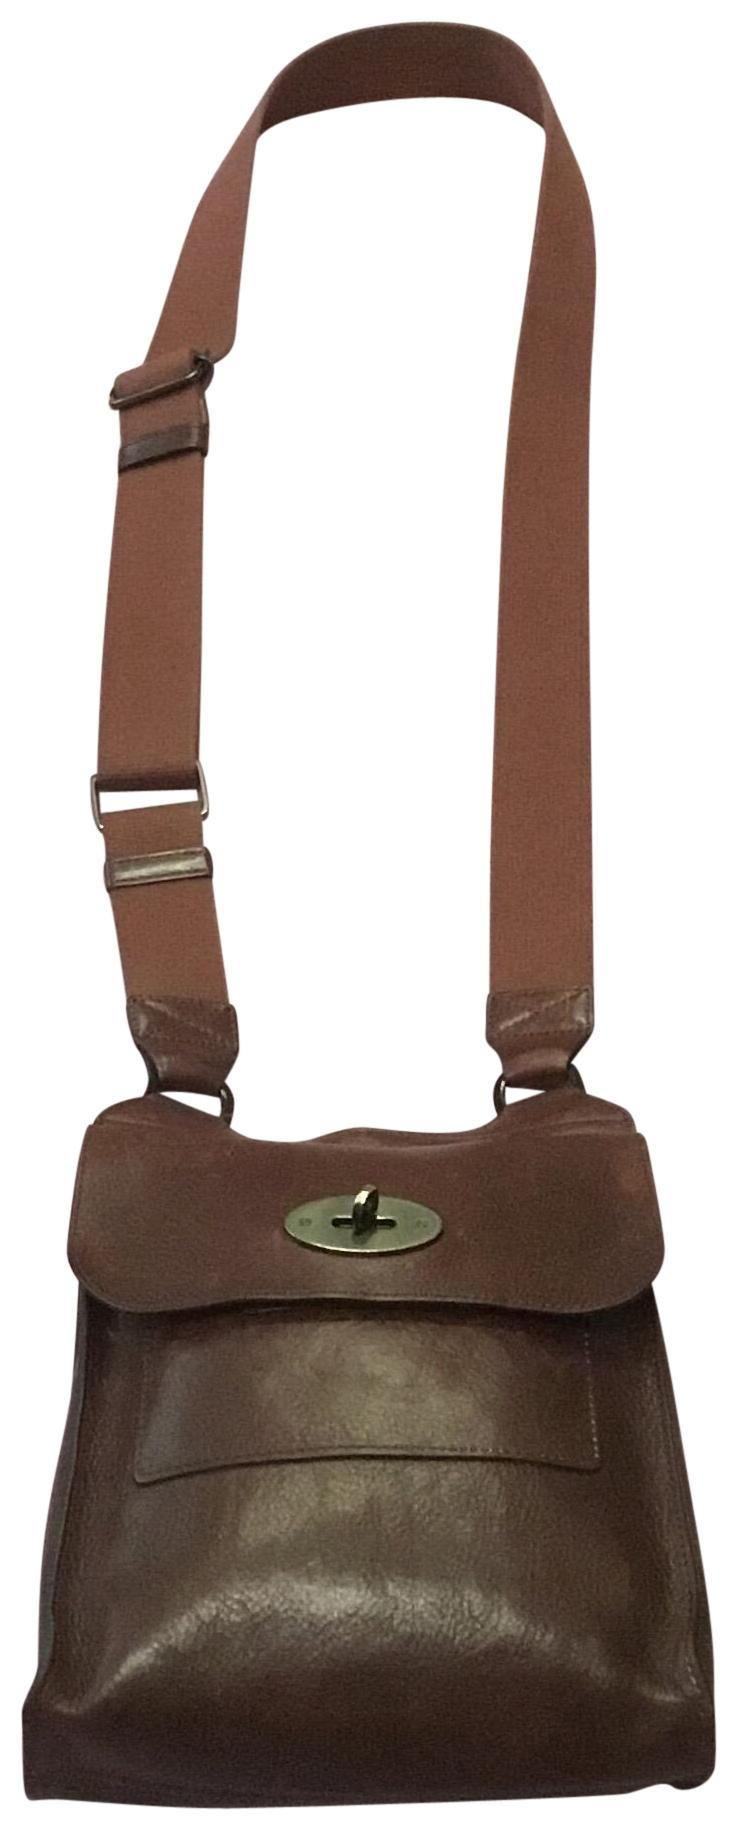 cf11f8e9fd italy mulberry antony leather shoulder bag clay 4aa40 0f75e; top quality mulberry  cross body bag 844ff 5a60d